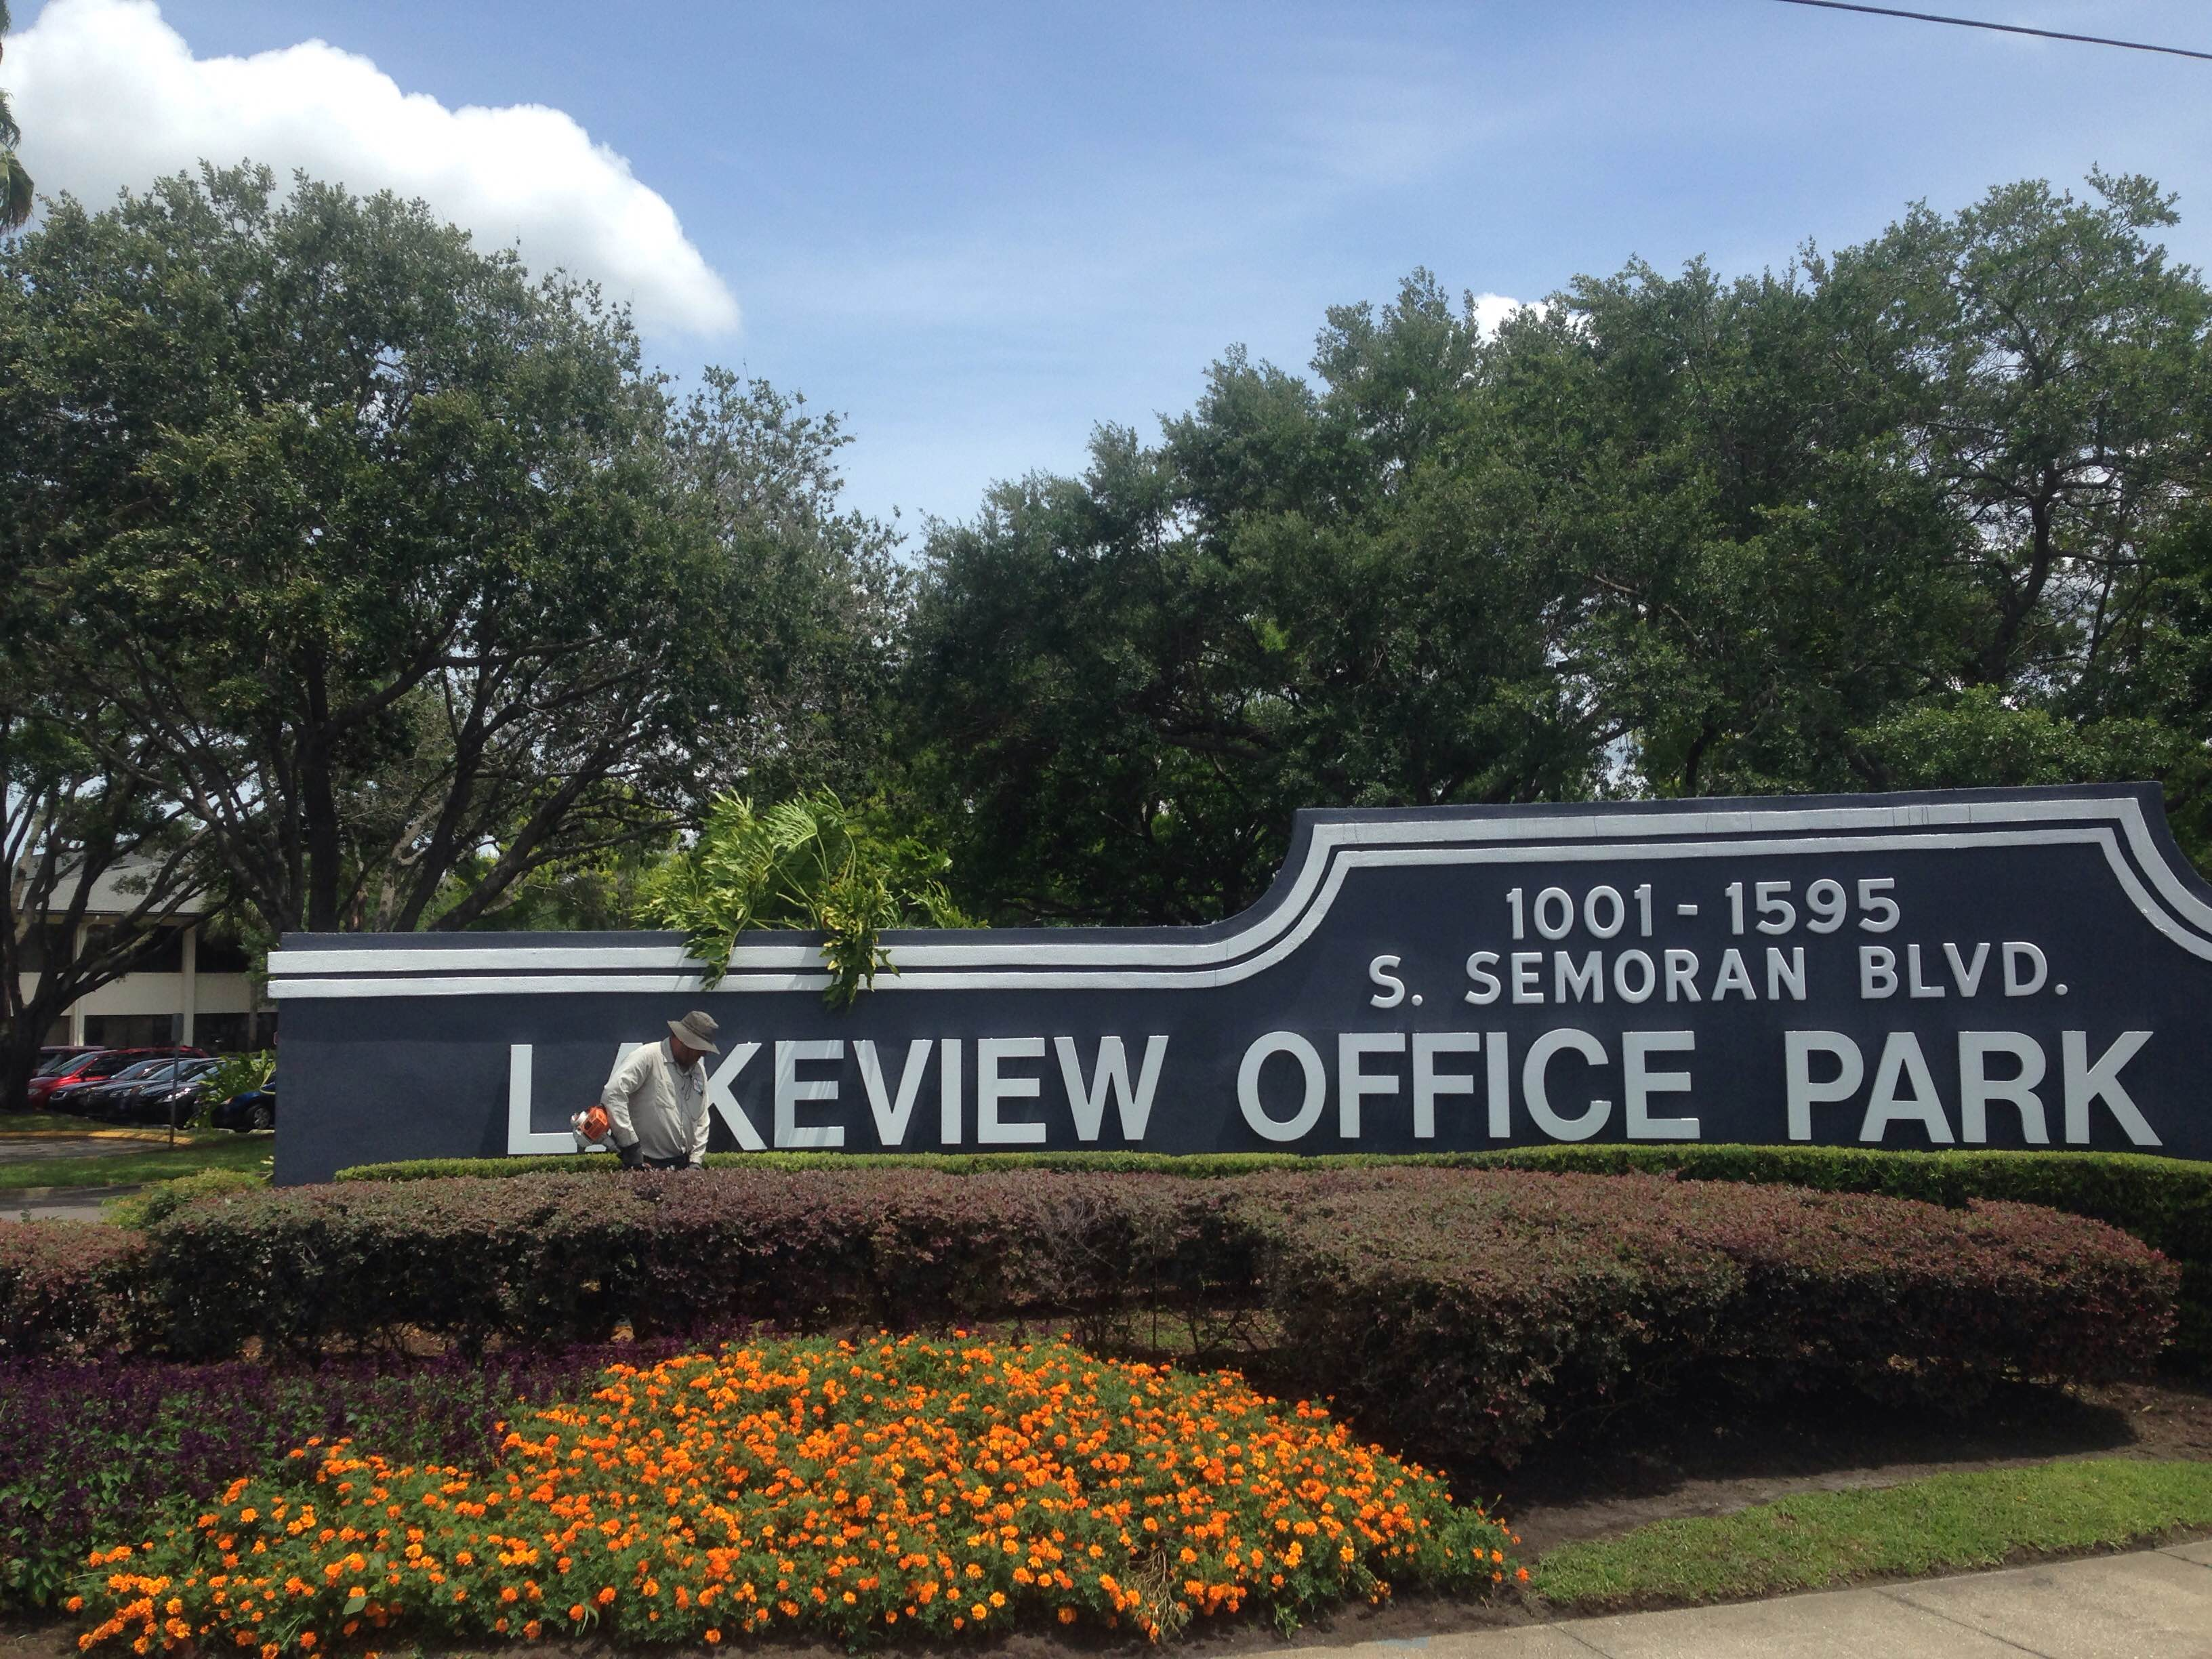 Lakeview Office